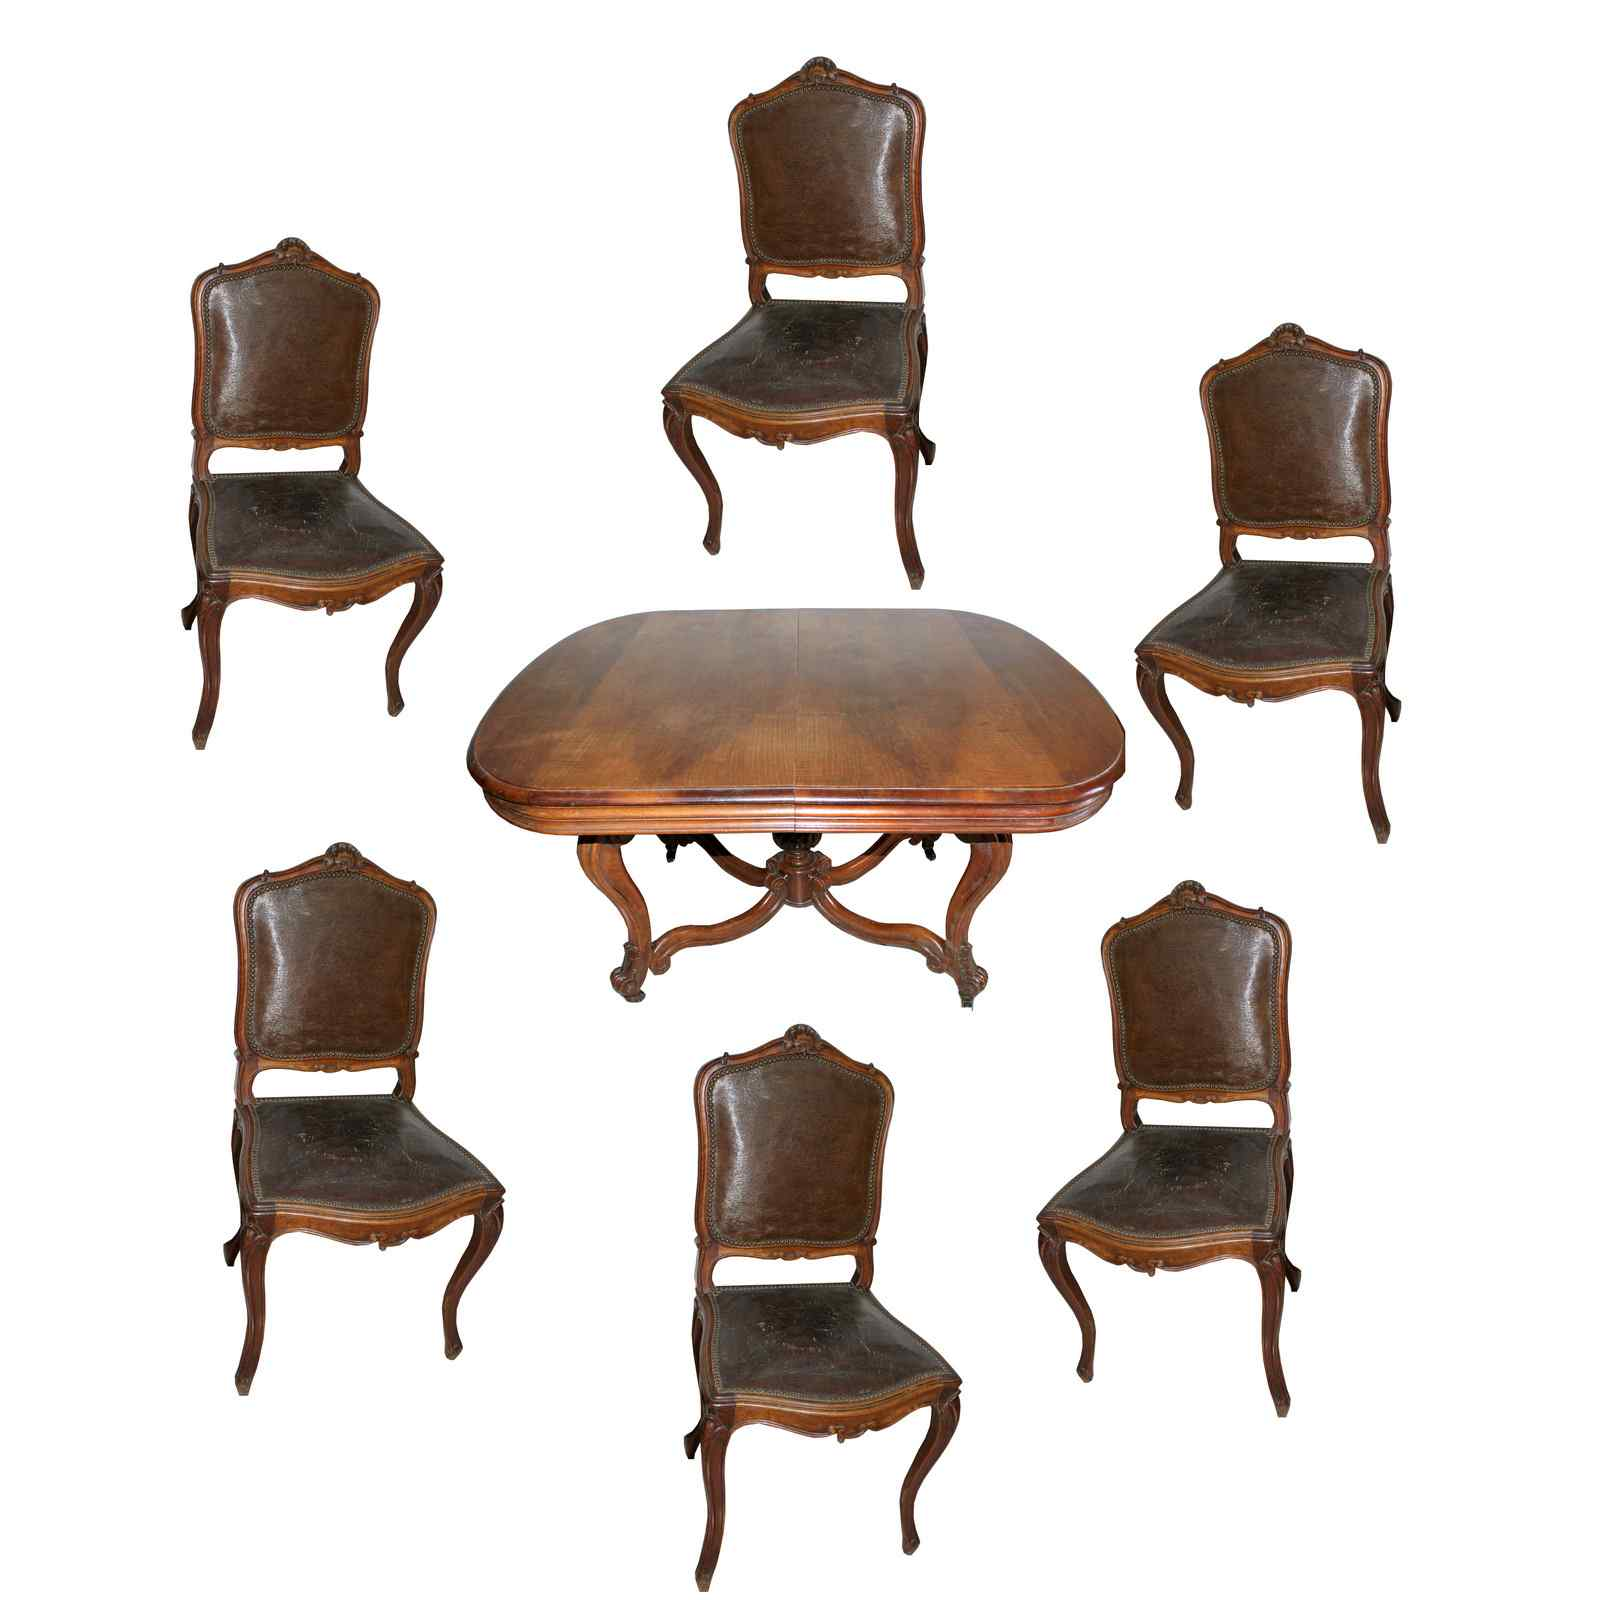 Table + 6 chairs in solid walnut France, 19th century